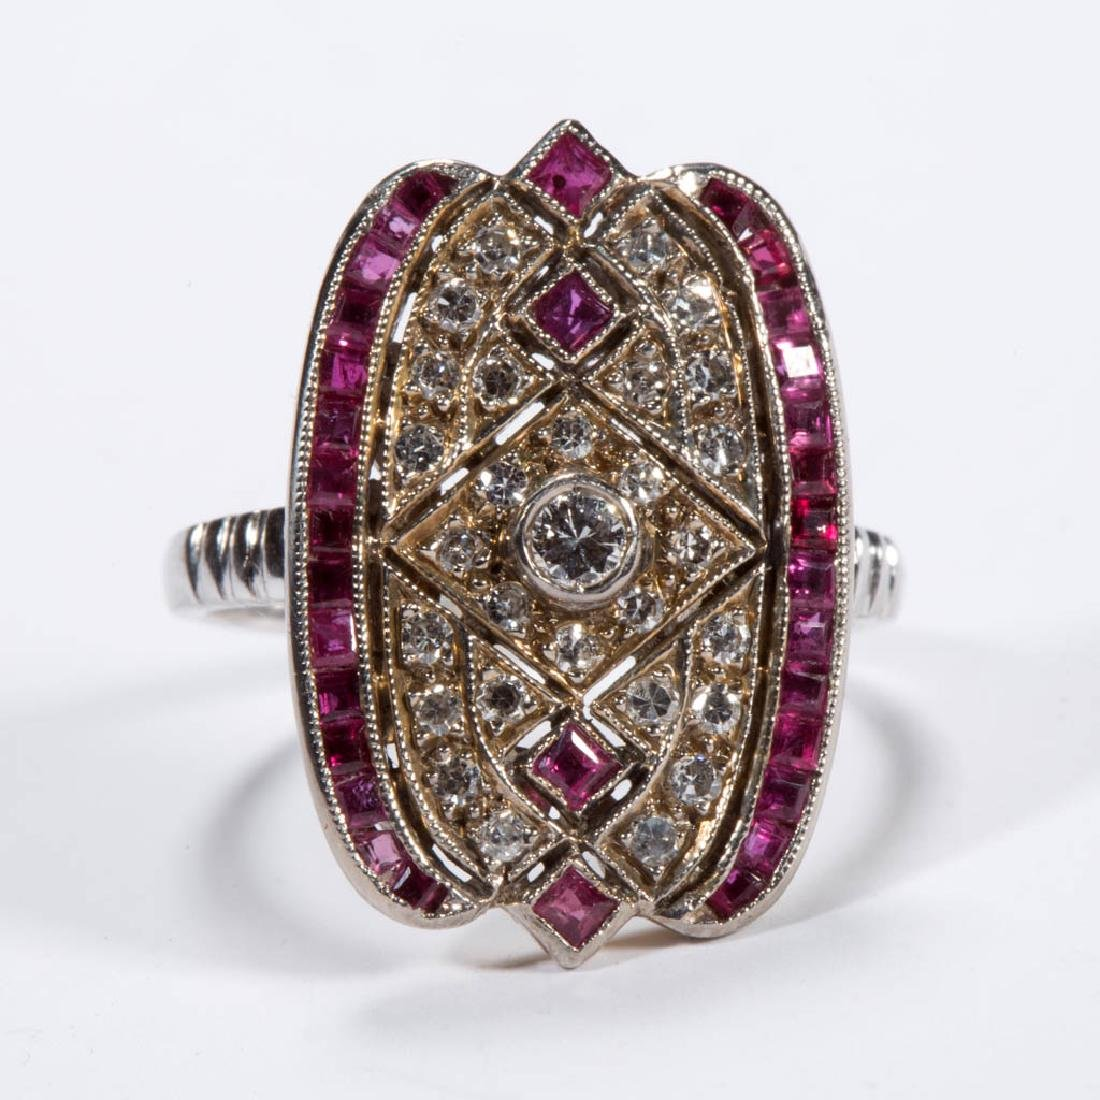 VINTAGE ART DECO 18K GOLD, PLATINUM, DIAMOND, AND RUBY